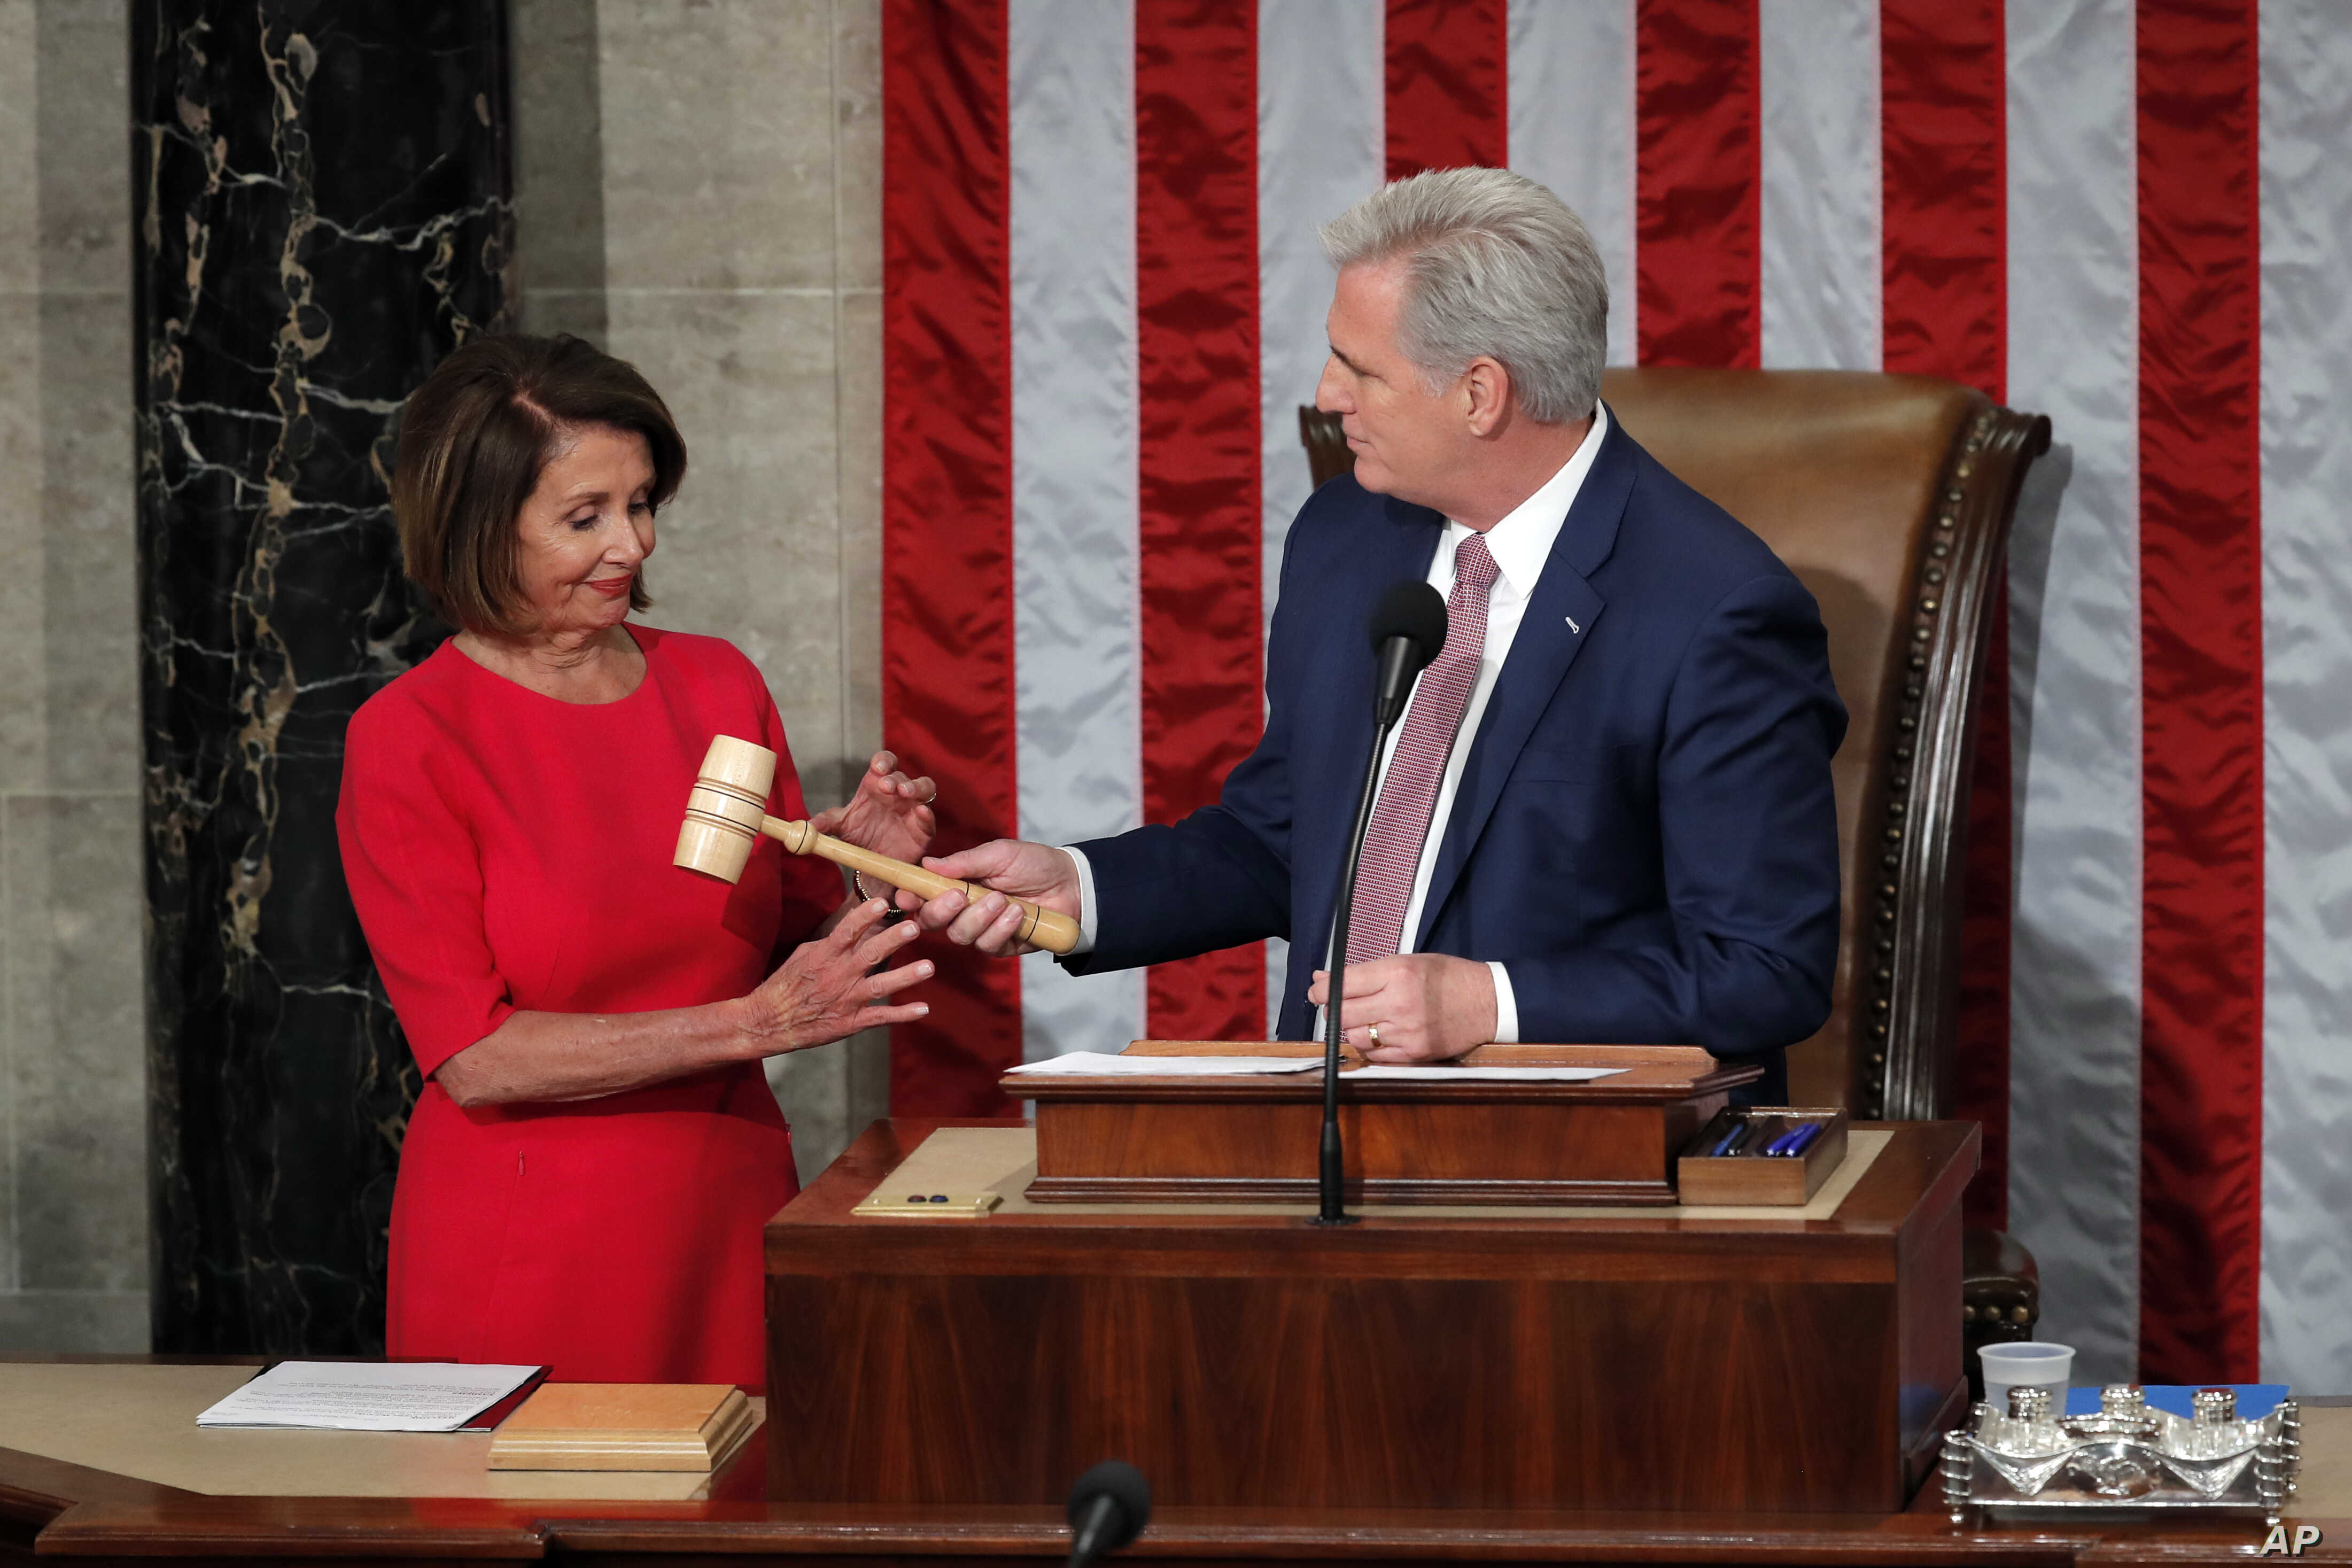 House speaker Nancy Pelosi of California, who will lead the 116th Congress as Speaker of the House is handed the gavel by Rep. Kevin McCarthy, R-Calif., at the U.S. Capitol in Washington, Jan. 3, 2019.